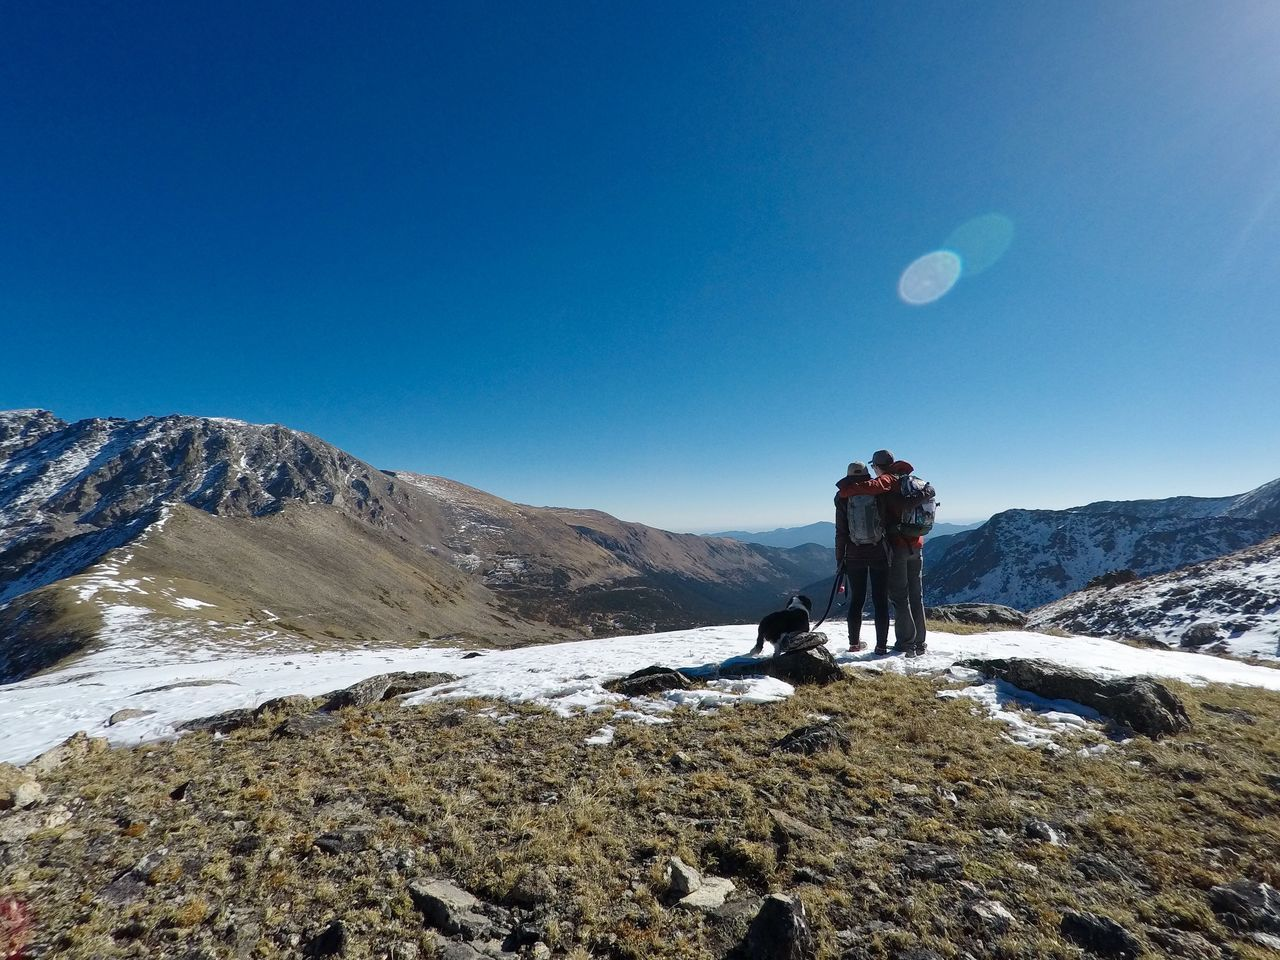 Rear View Of Hikers With Dog Standing On Rocky Mountain Against Blue Sky